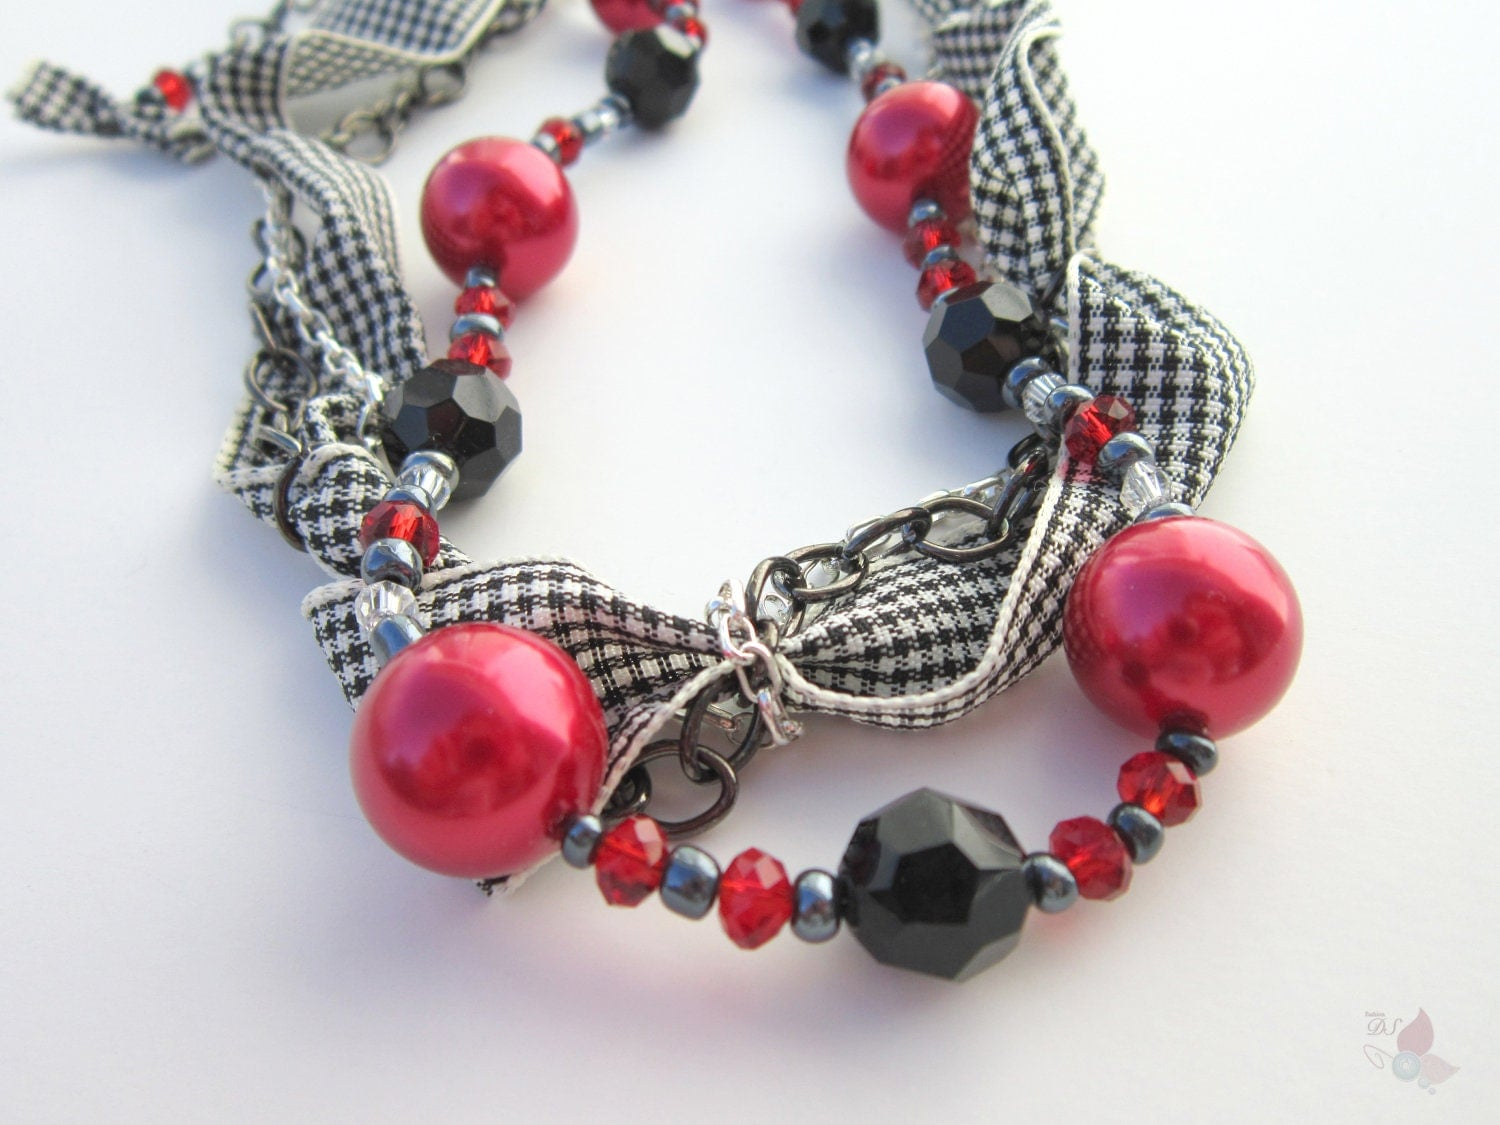 Necklace in Chains, Glass Pearls, Glass Beads, and Ribbon